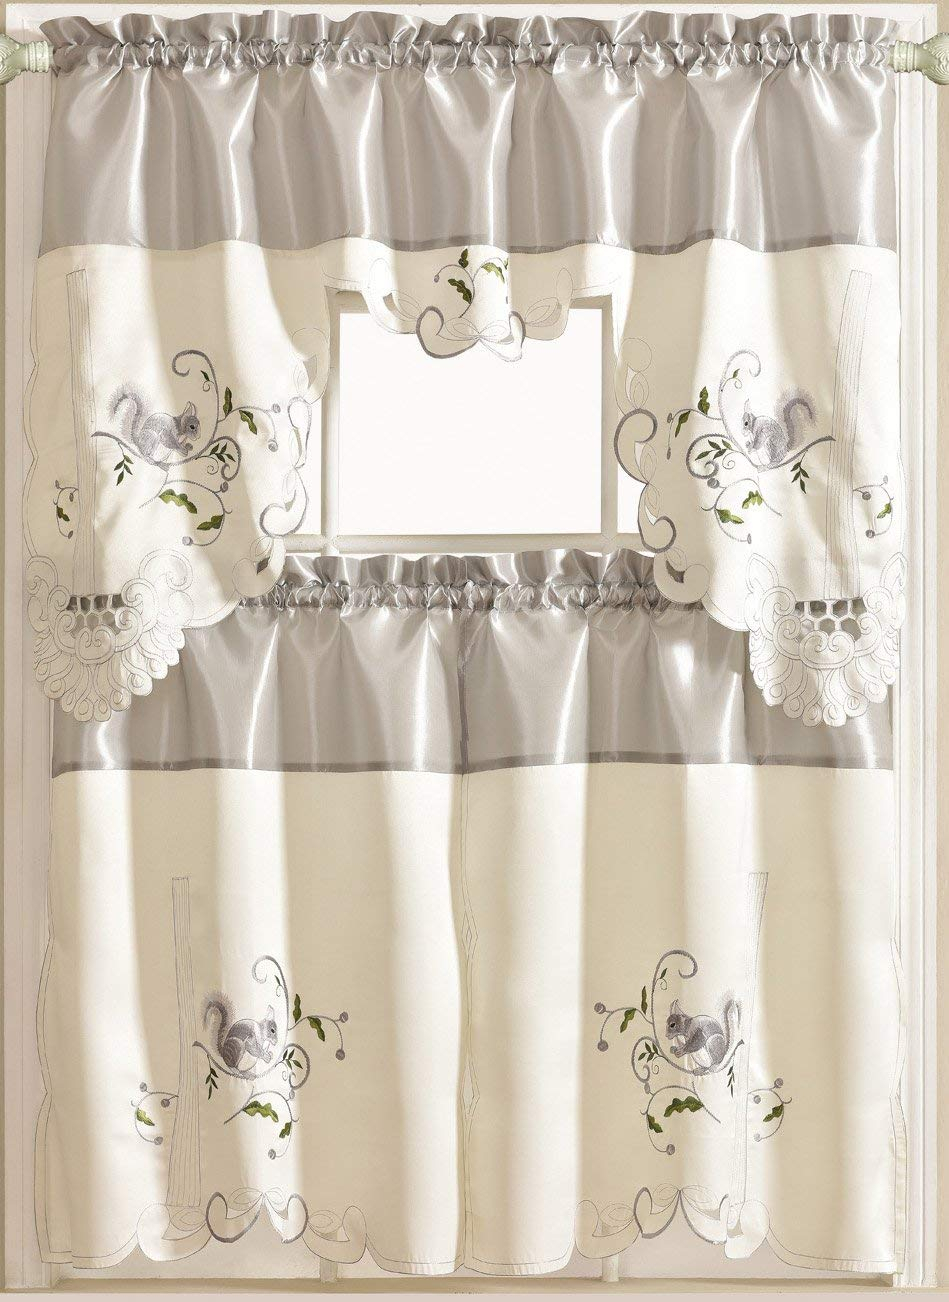 Cheap Kitchen Curtain Pictures, Find Kitchen Curtain With Regard To Spring Daisy Tiered Curtain 3 Piece Sets (View 4 of 20)